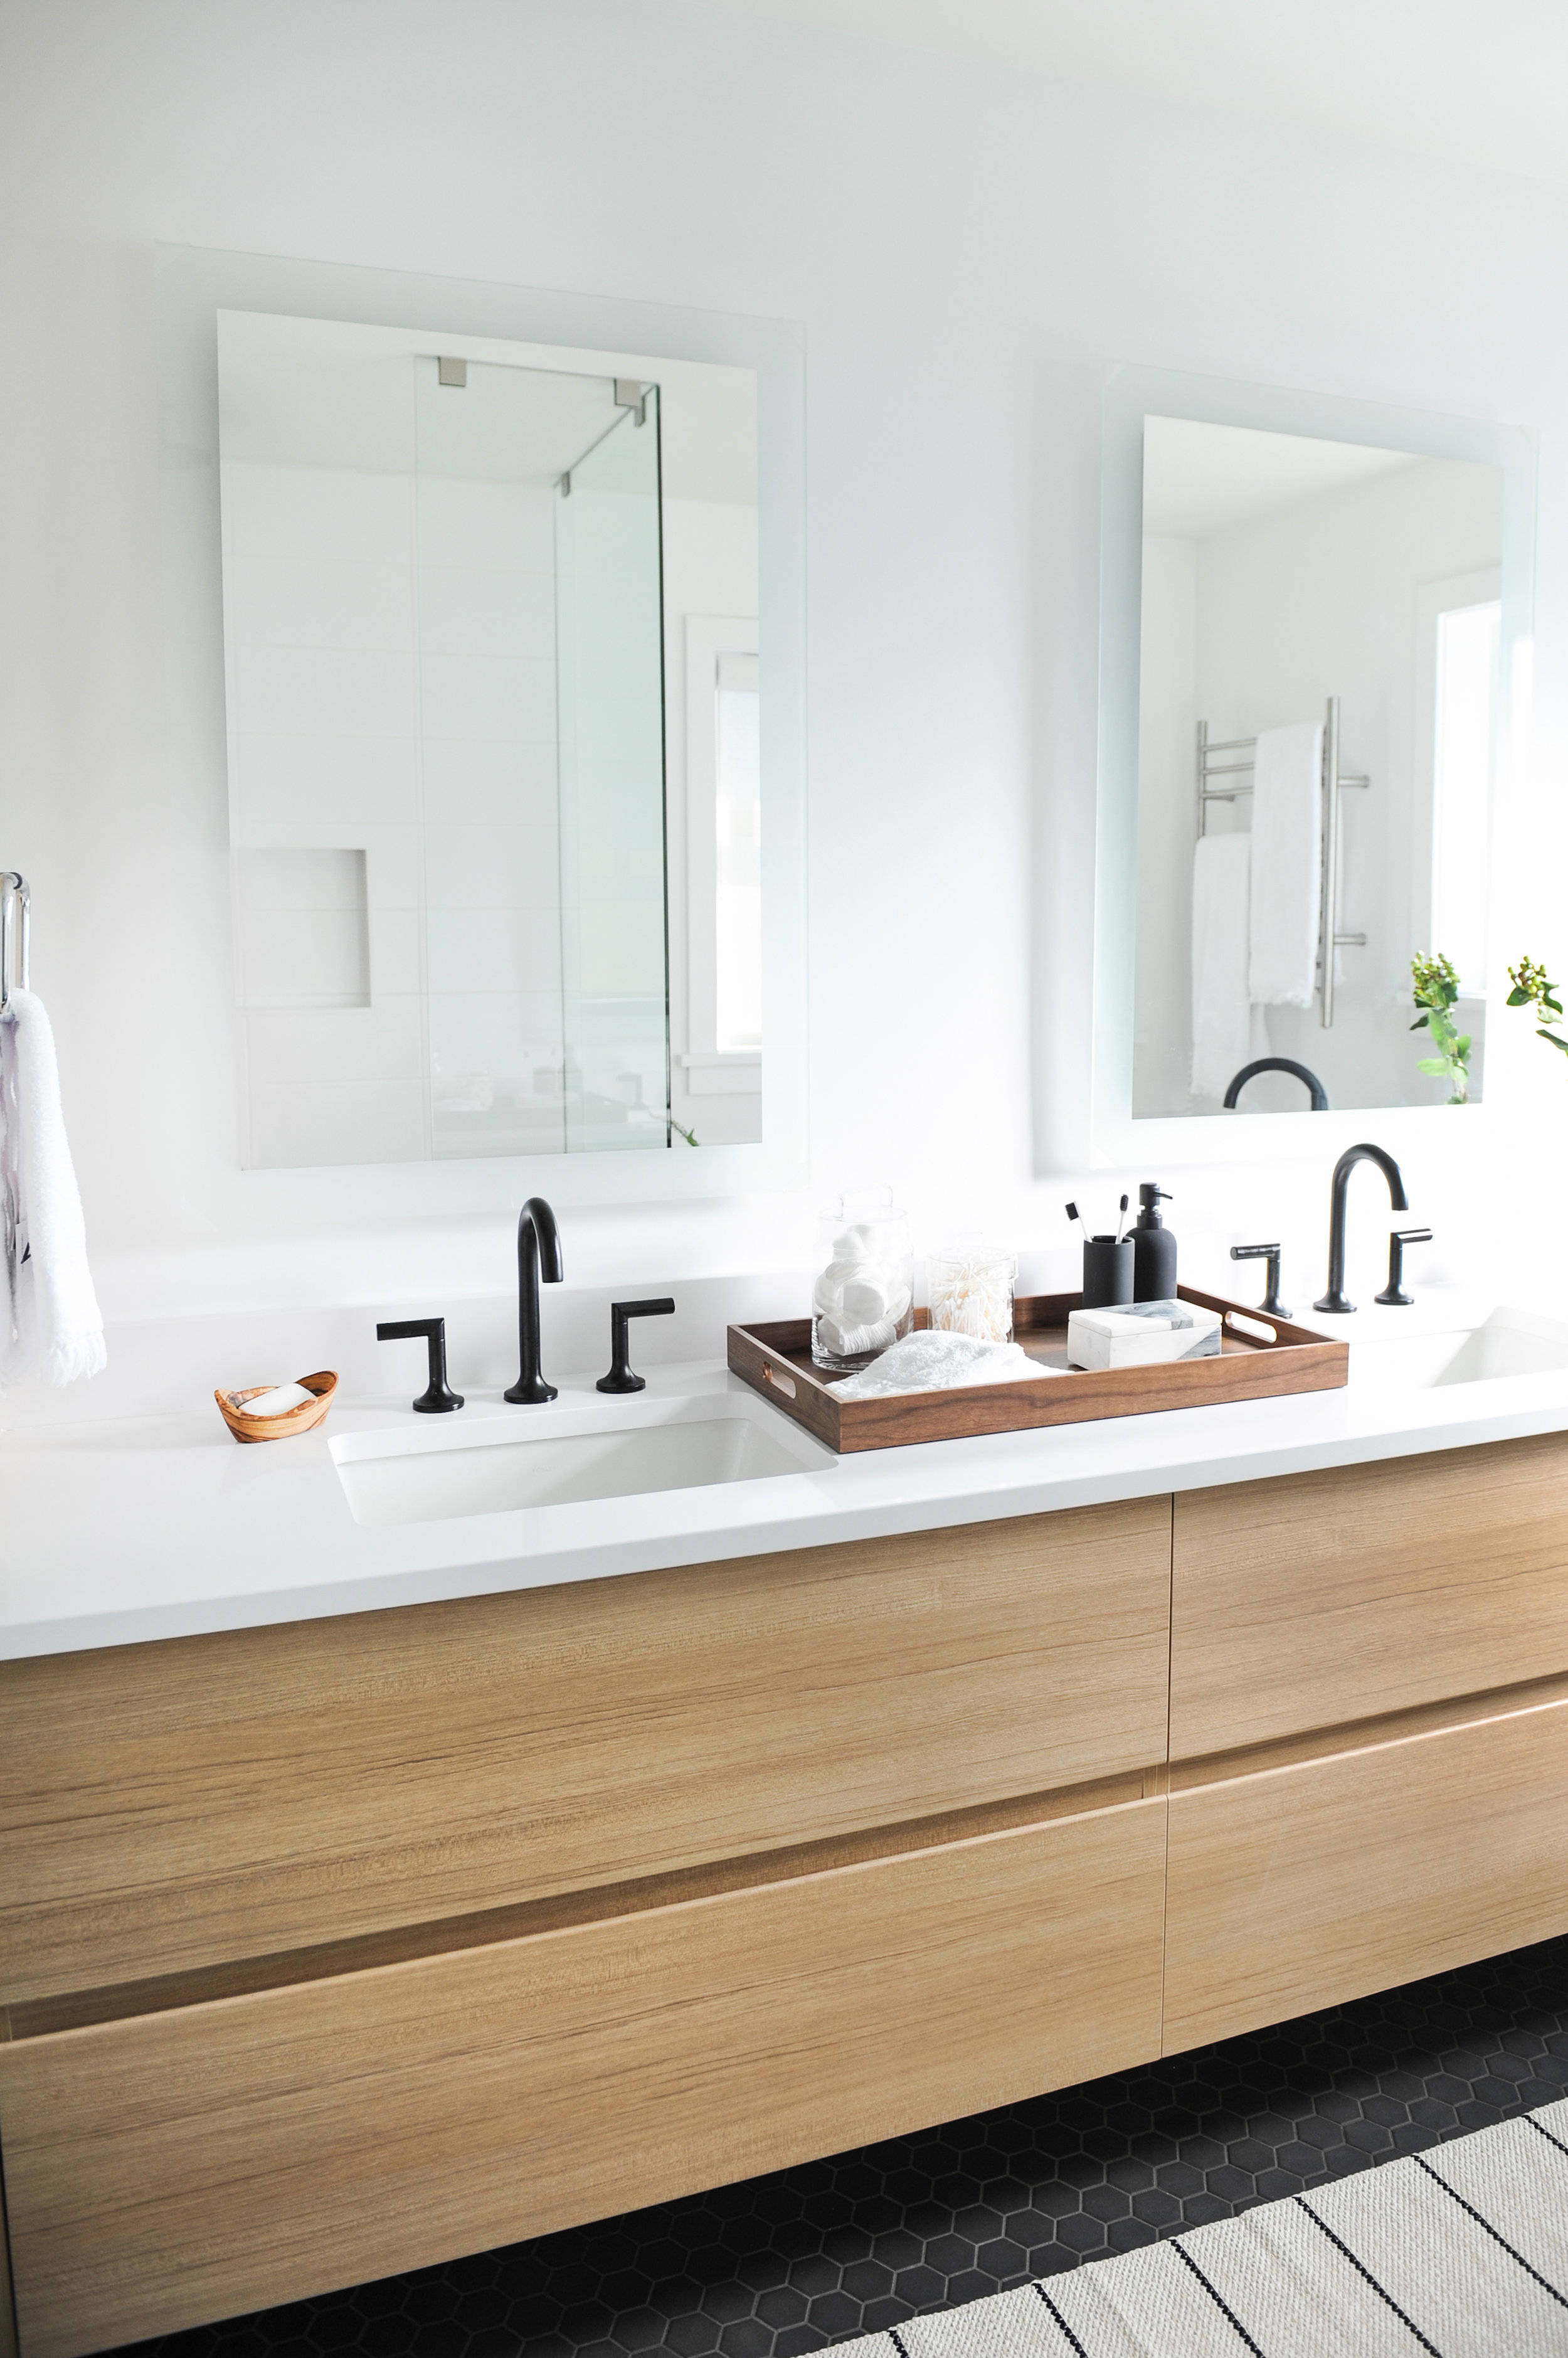 His and her sinks built into light wooden cabinets and a tray of various bathroom items sits in the middle